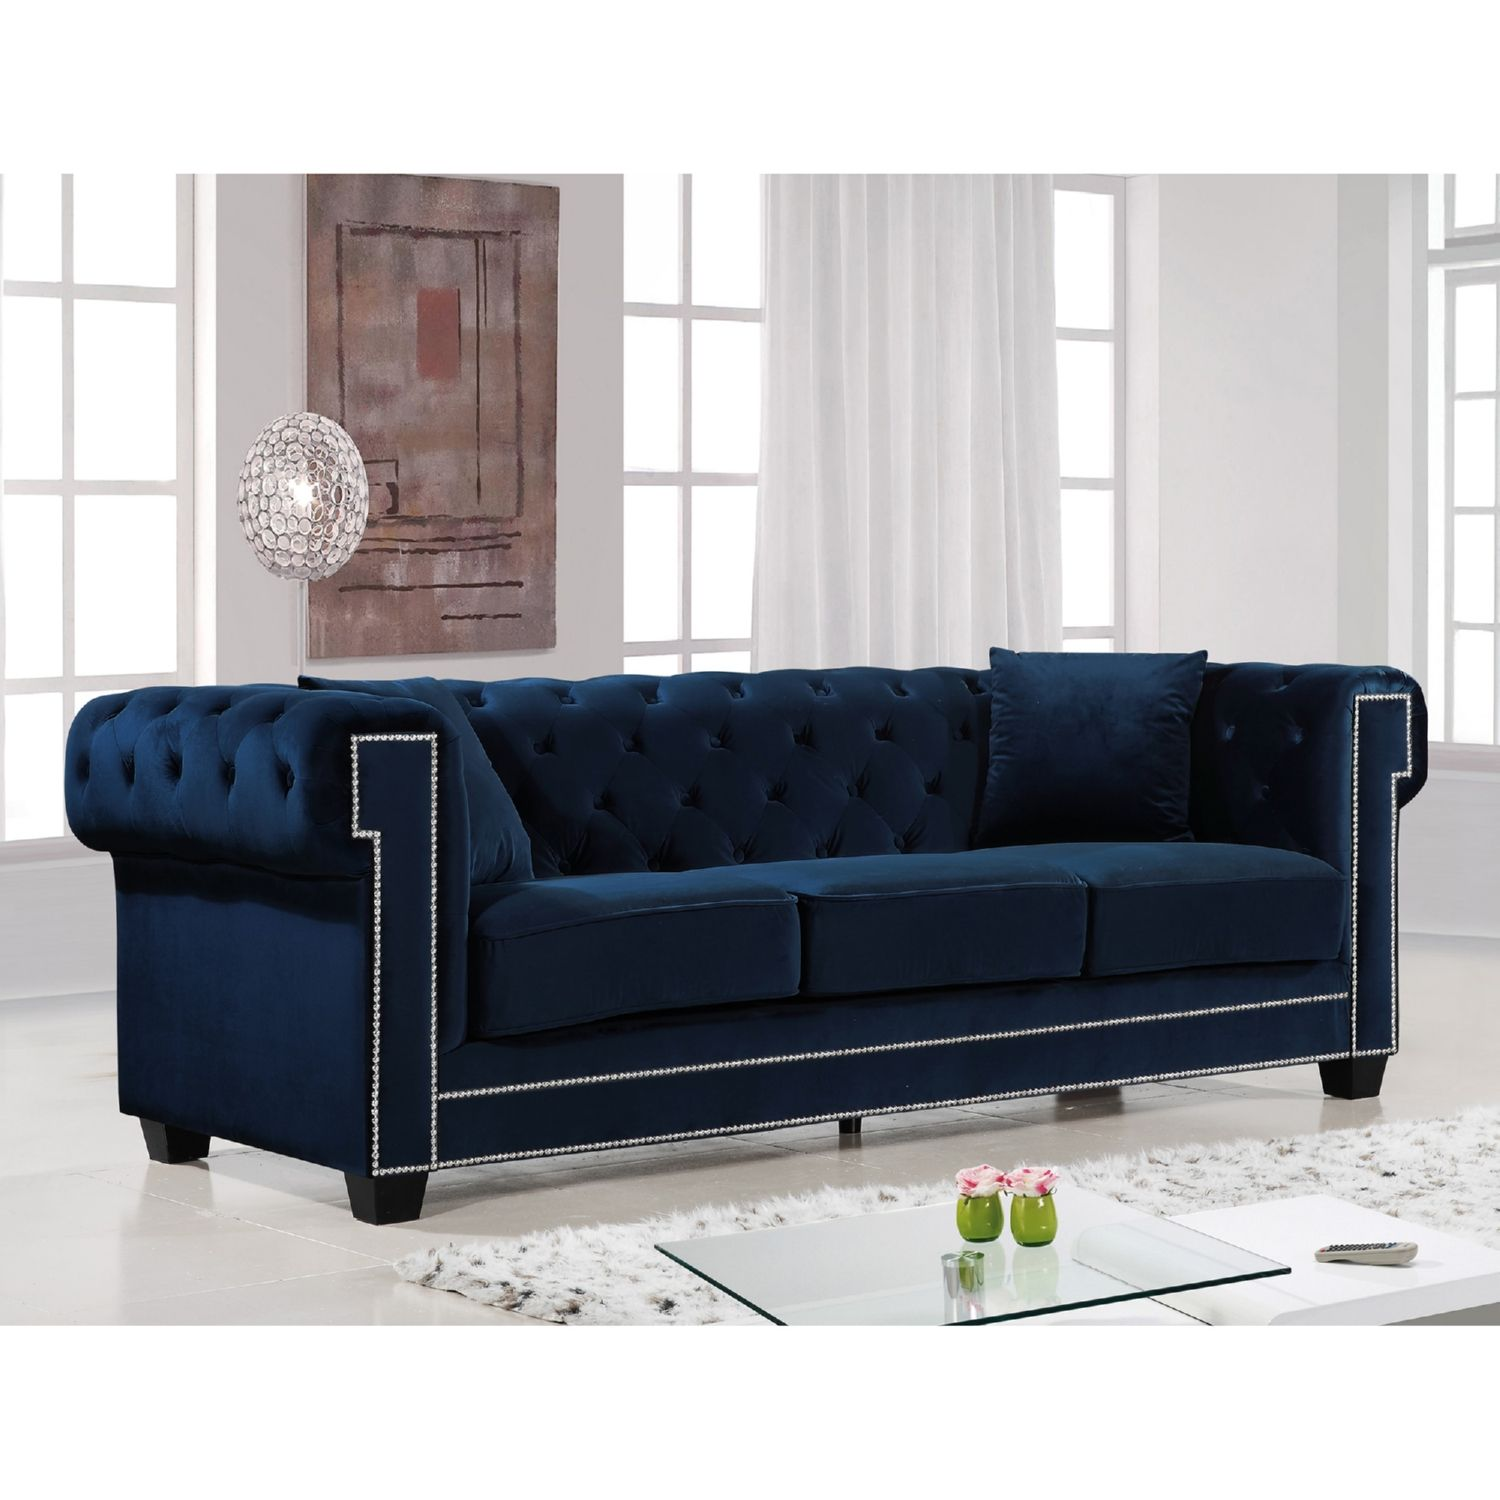 Meridian Furniture 614navy S Bowery Navy Tufted Velvet Sofa